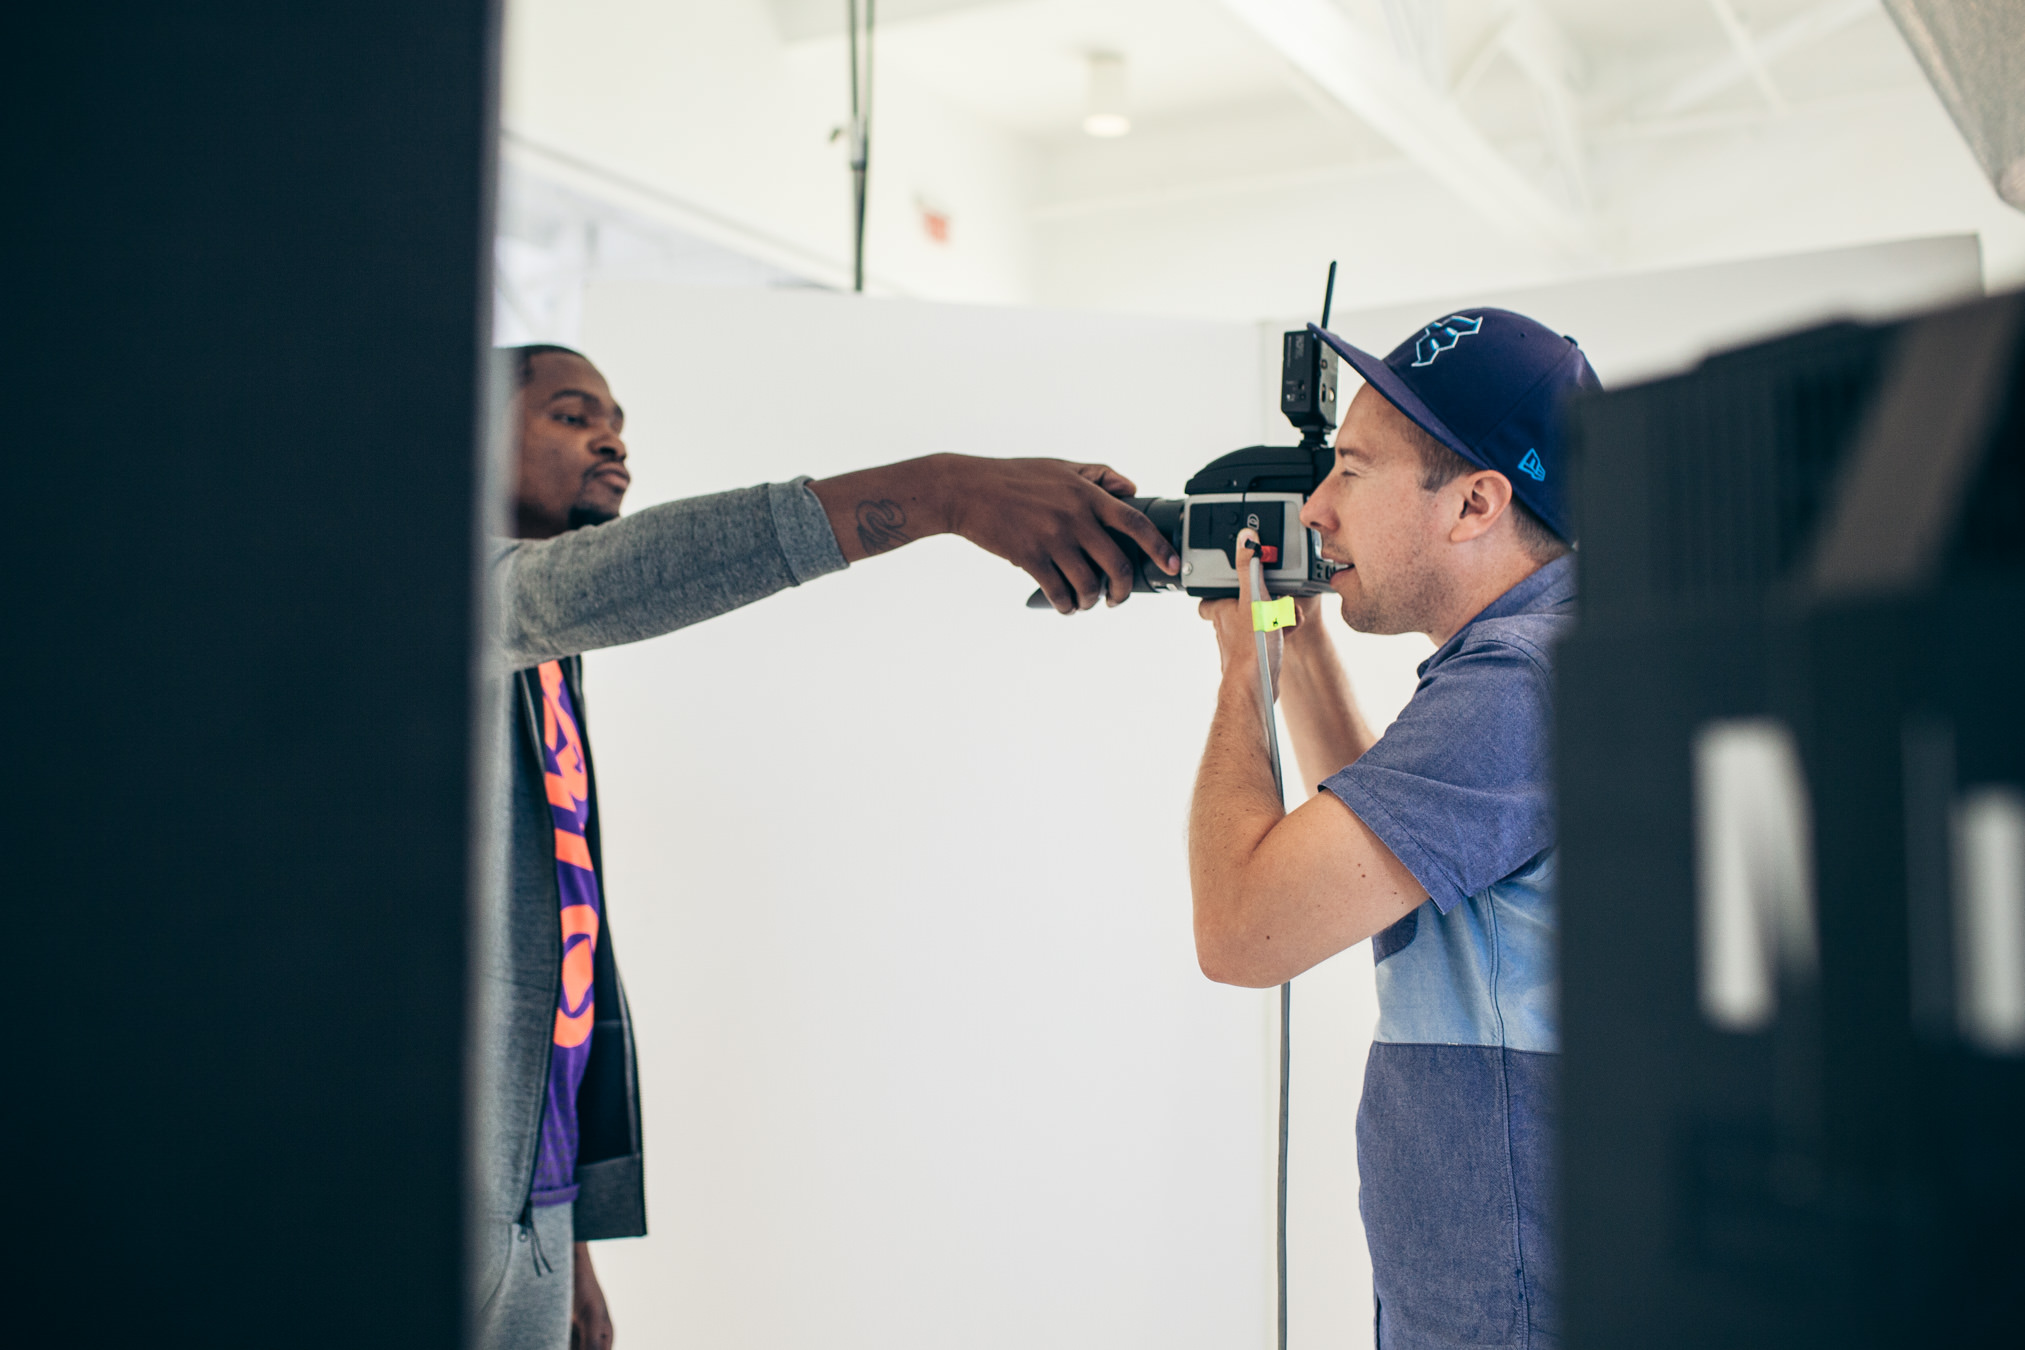 A Kevin Durant selfie with an expensive camera and John Keatley